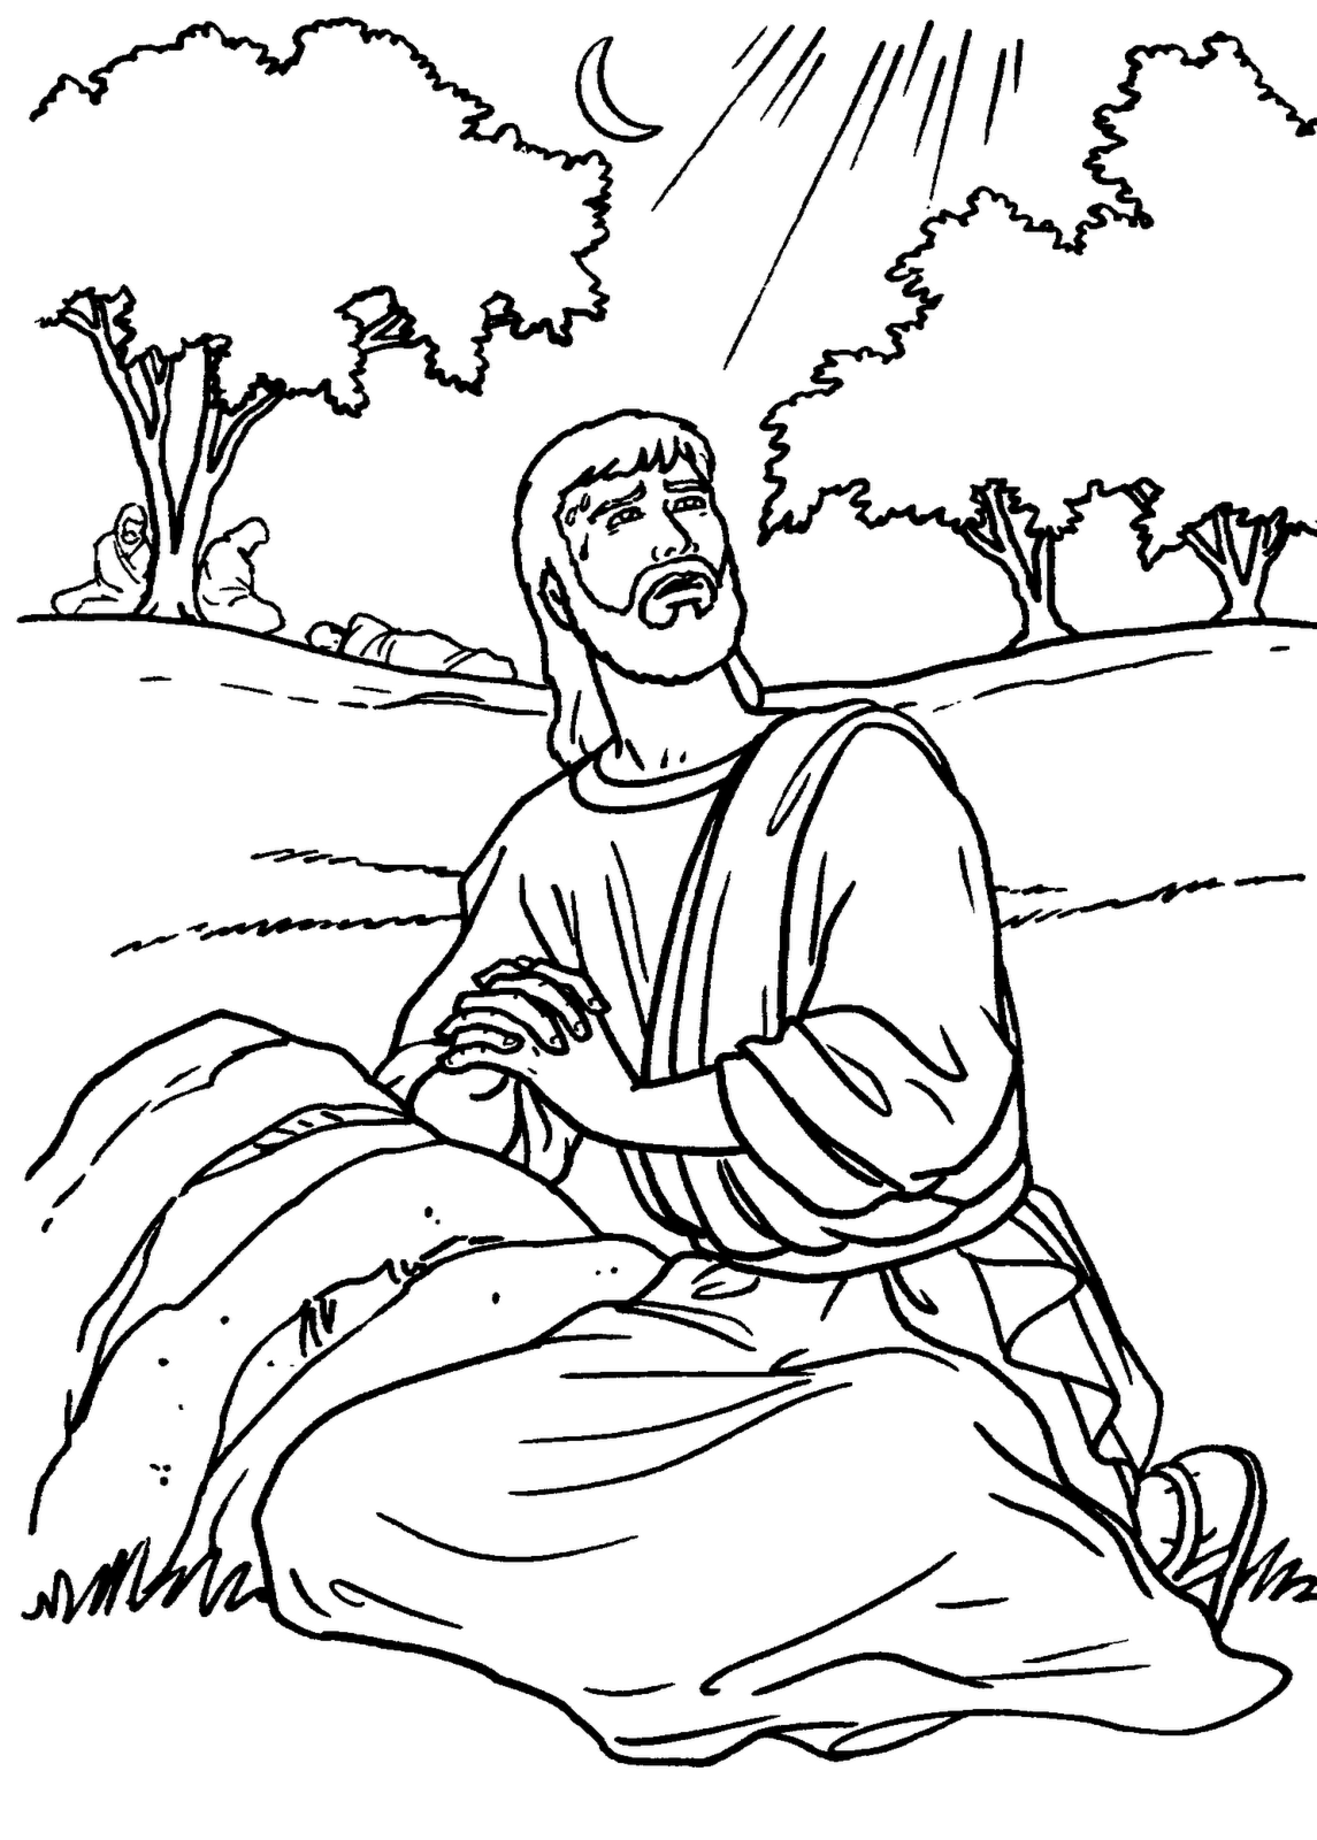 Jesus praying in the garden | Coloring Pages 3 | Pinterest | Church ...